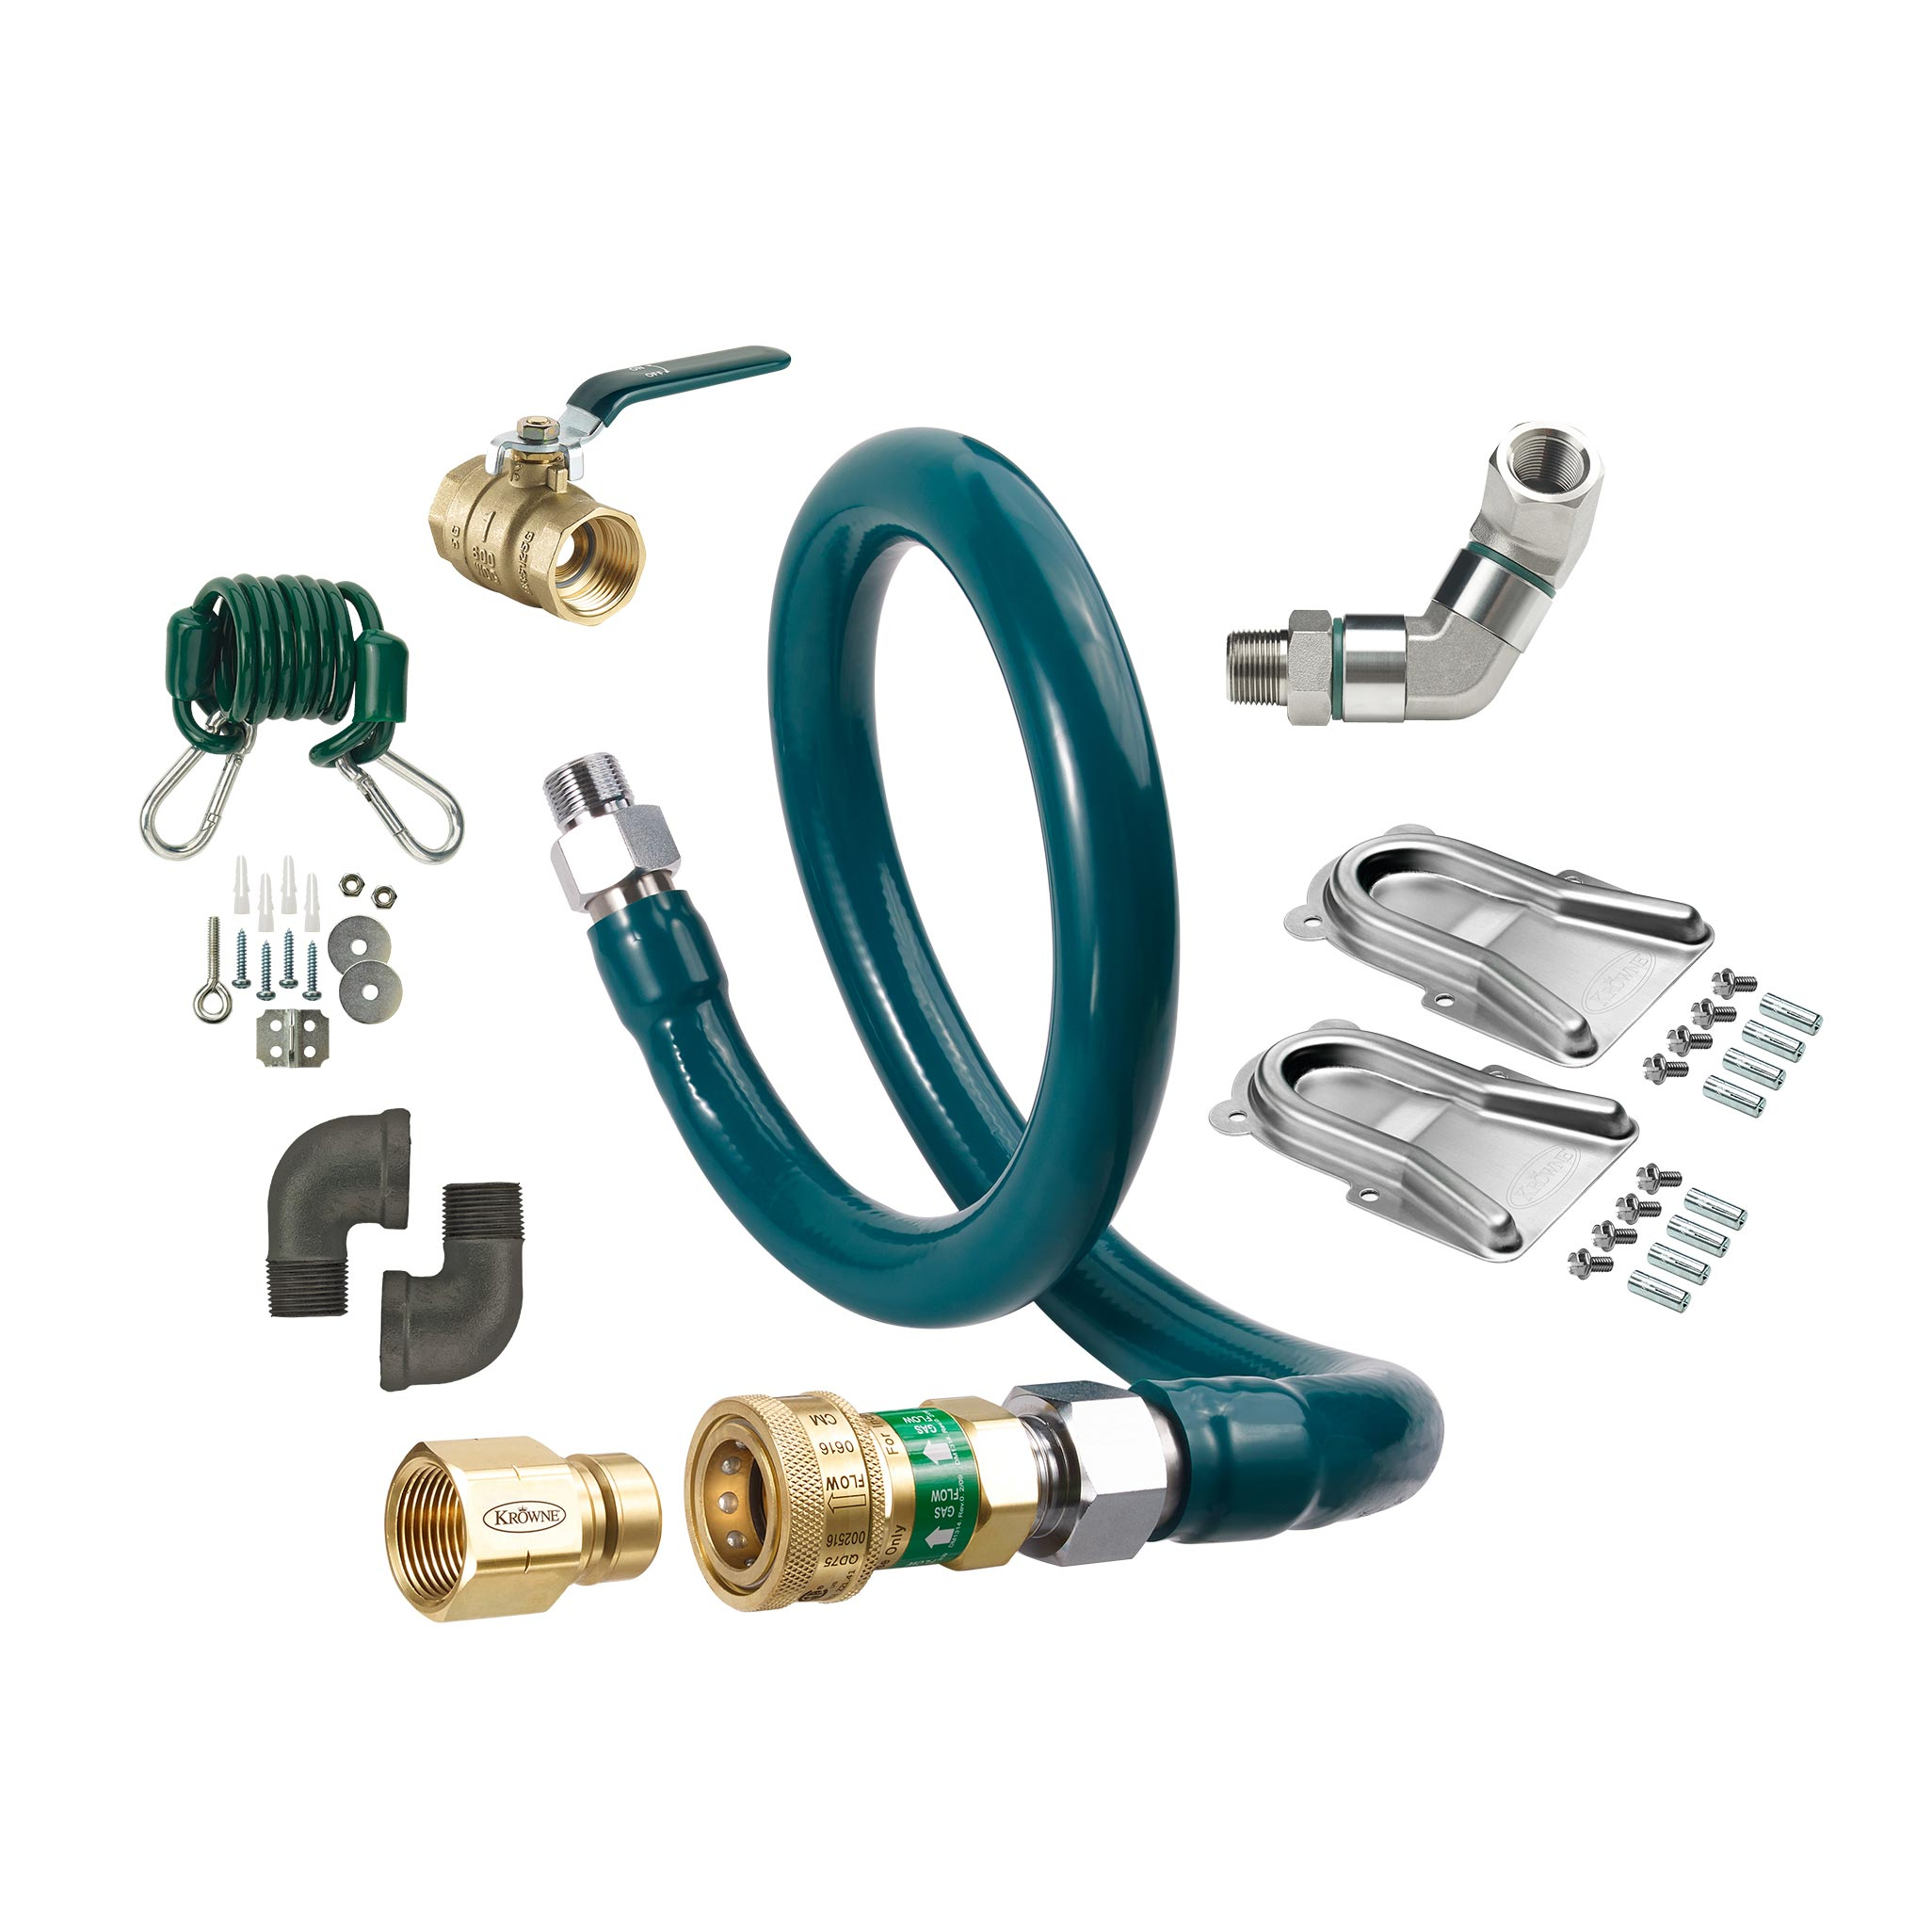 Krowne Metal M10036K11 gas connector hose kit